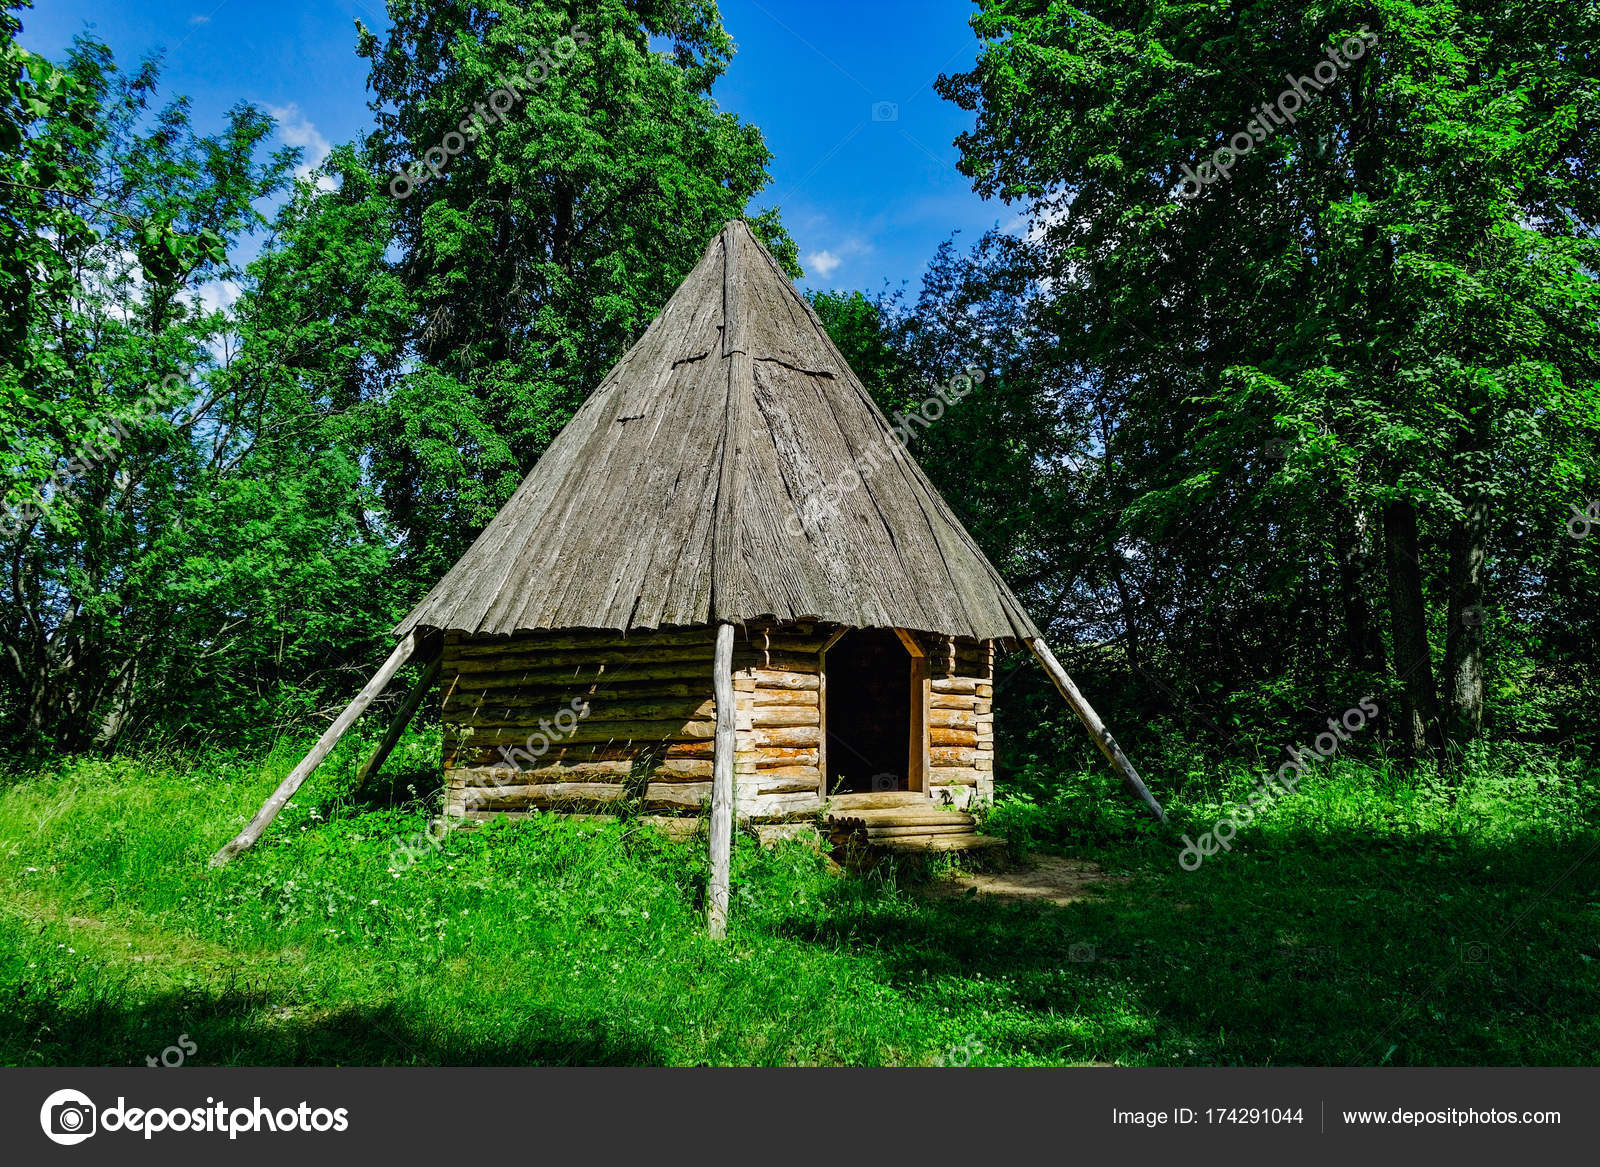 A Small Wooden Hut In The Forest On A Summer Day U2014 Photo By Alx_Yago